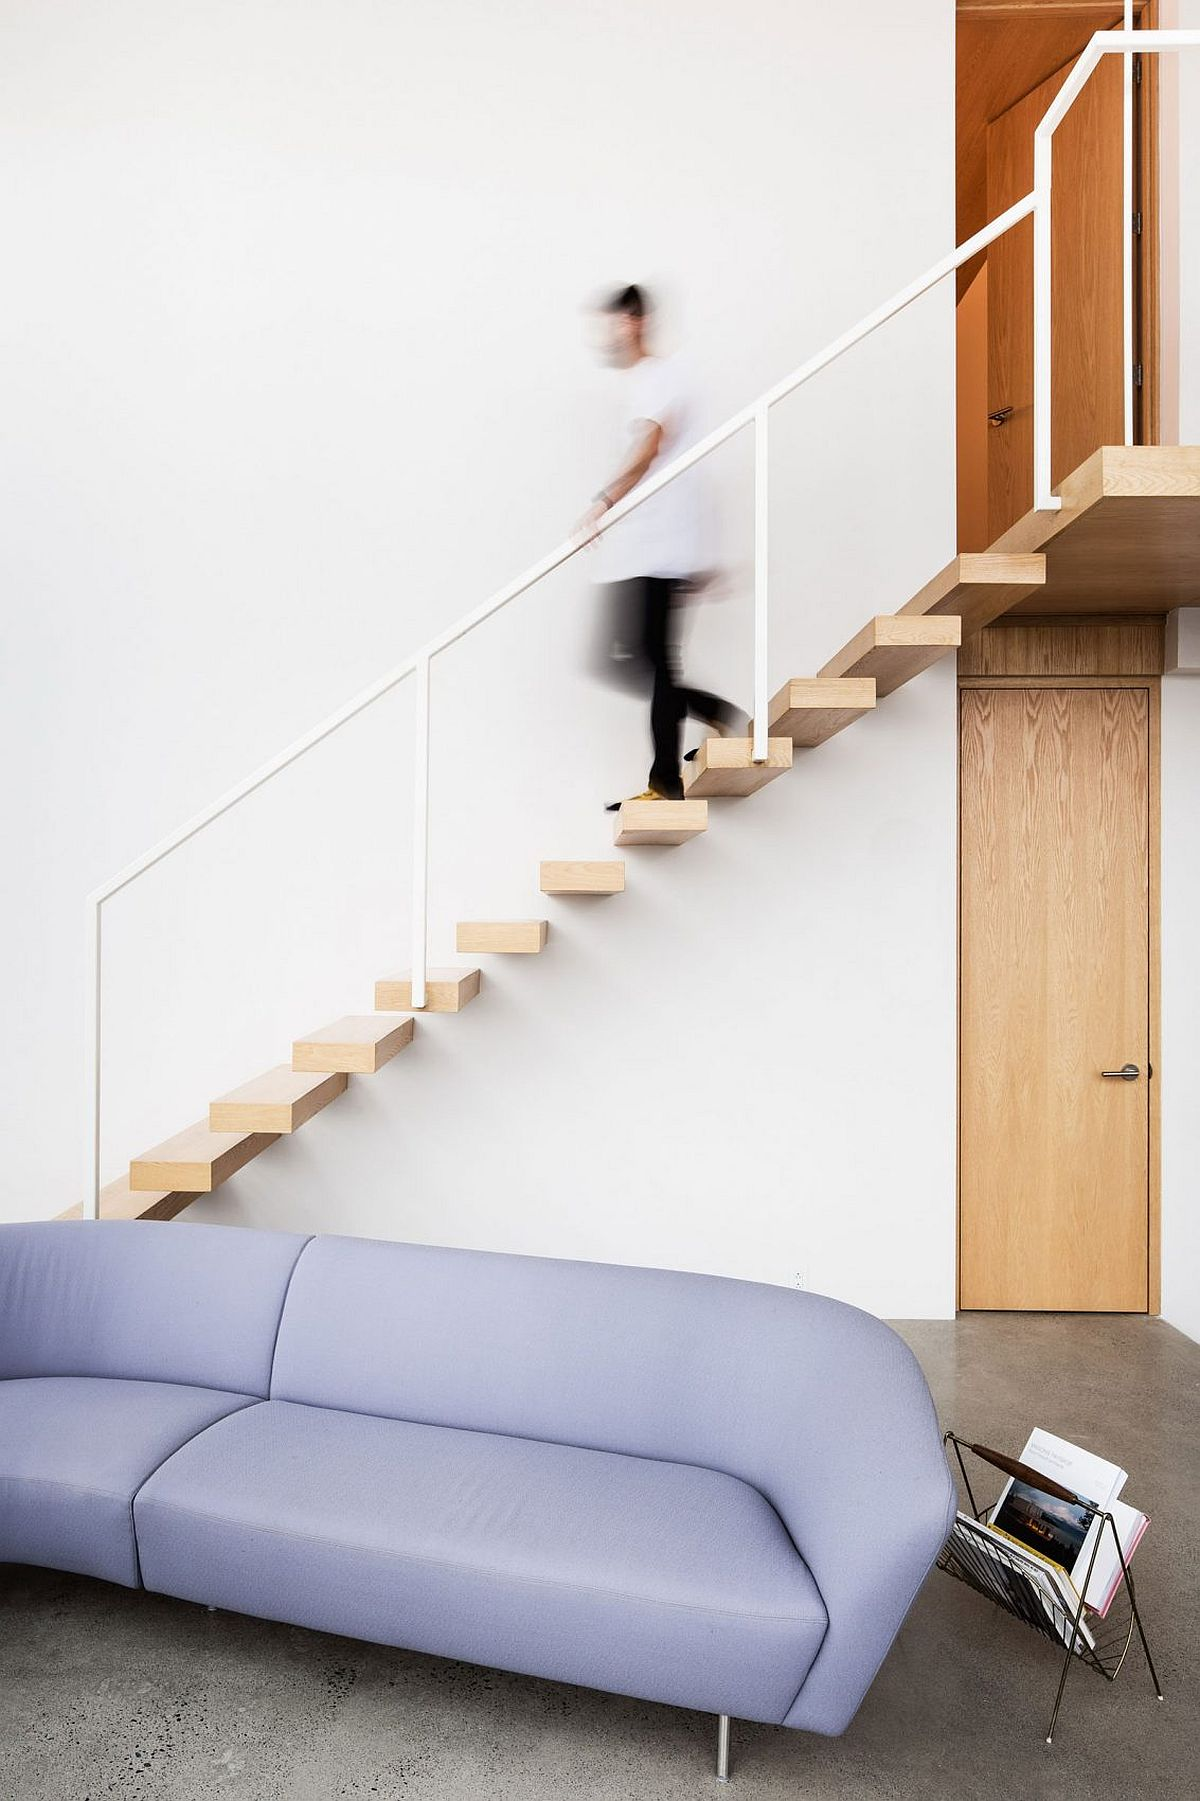 Minimal floating stairway with wooden stairs